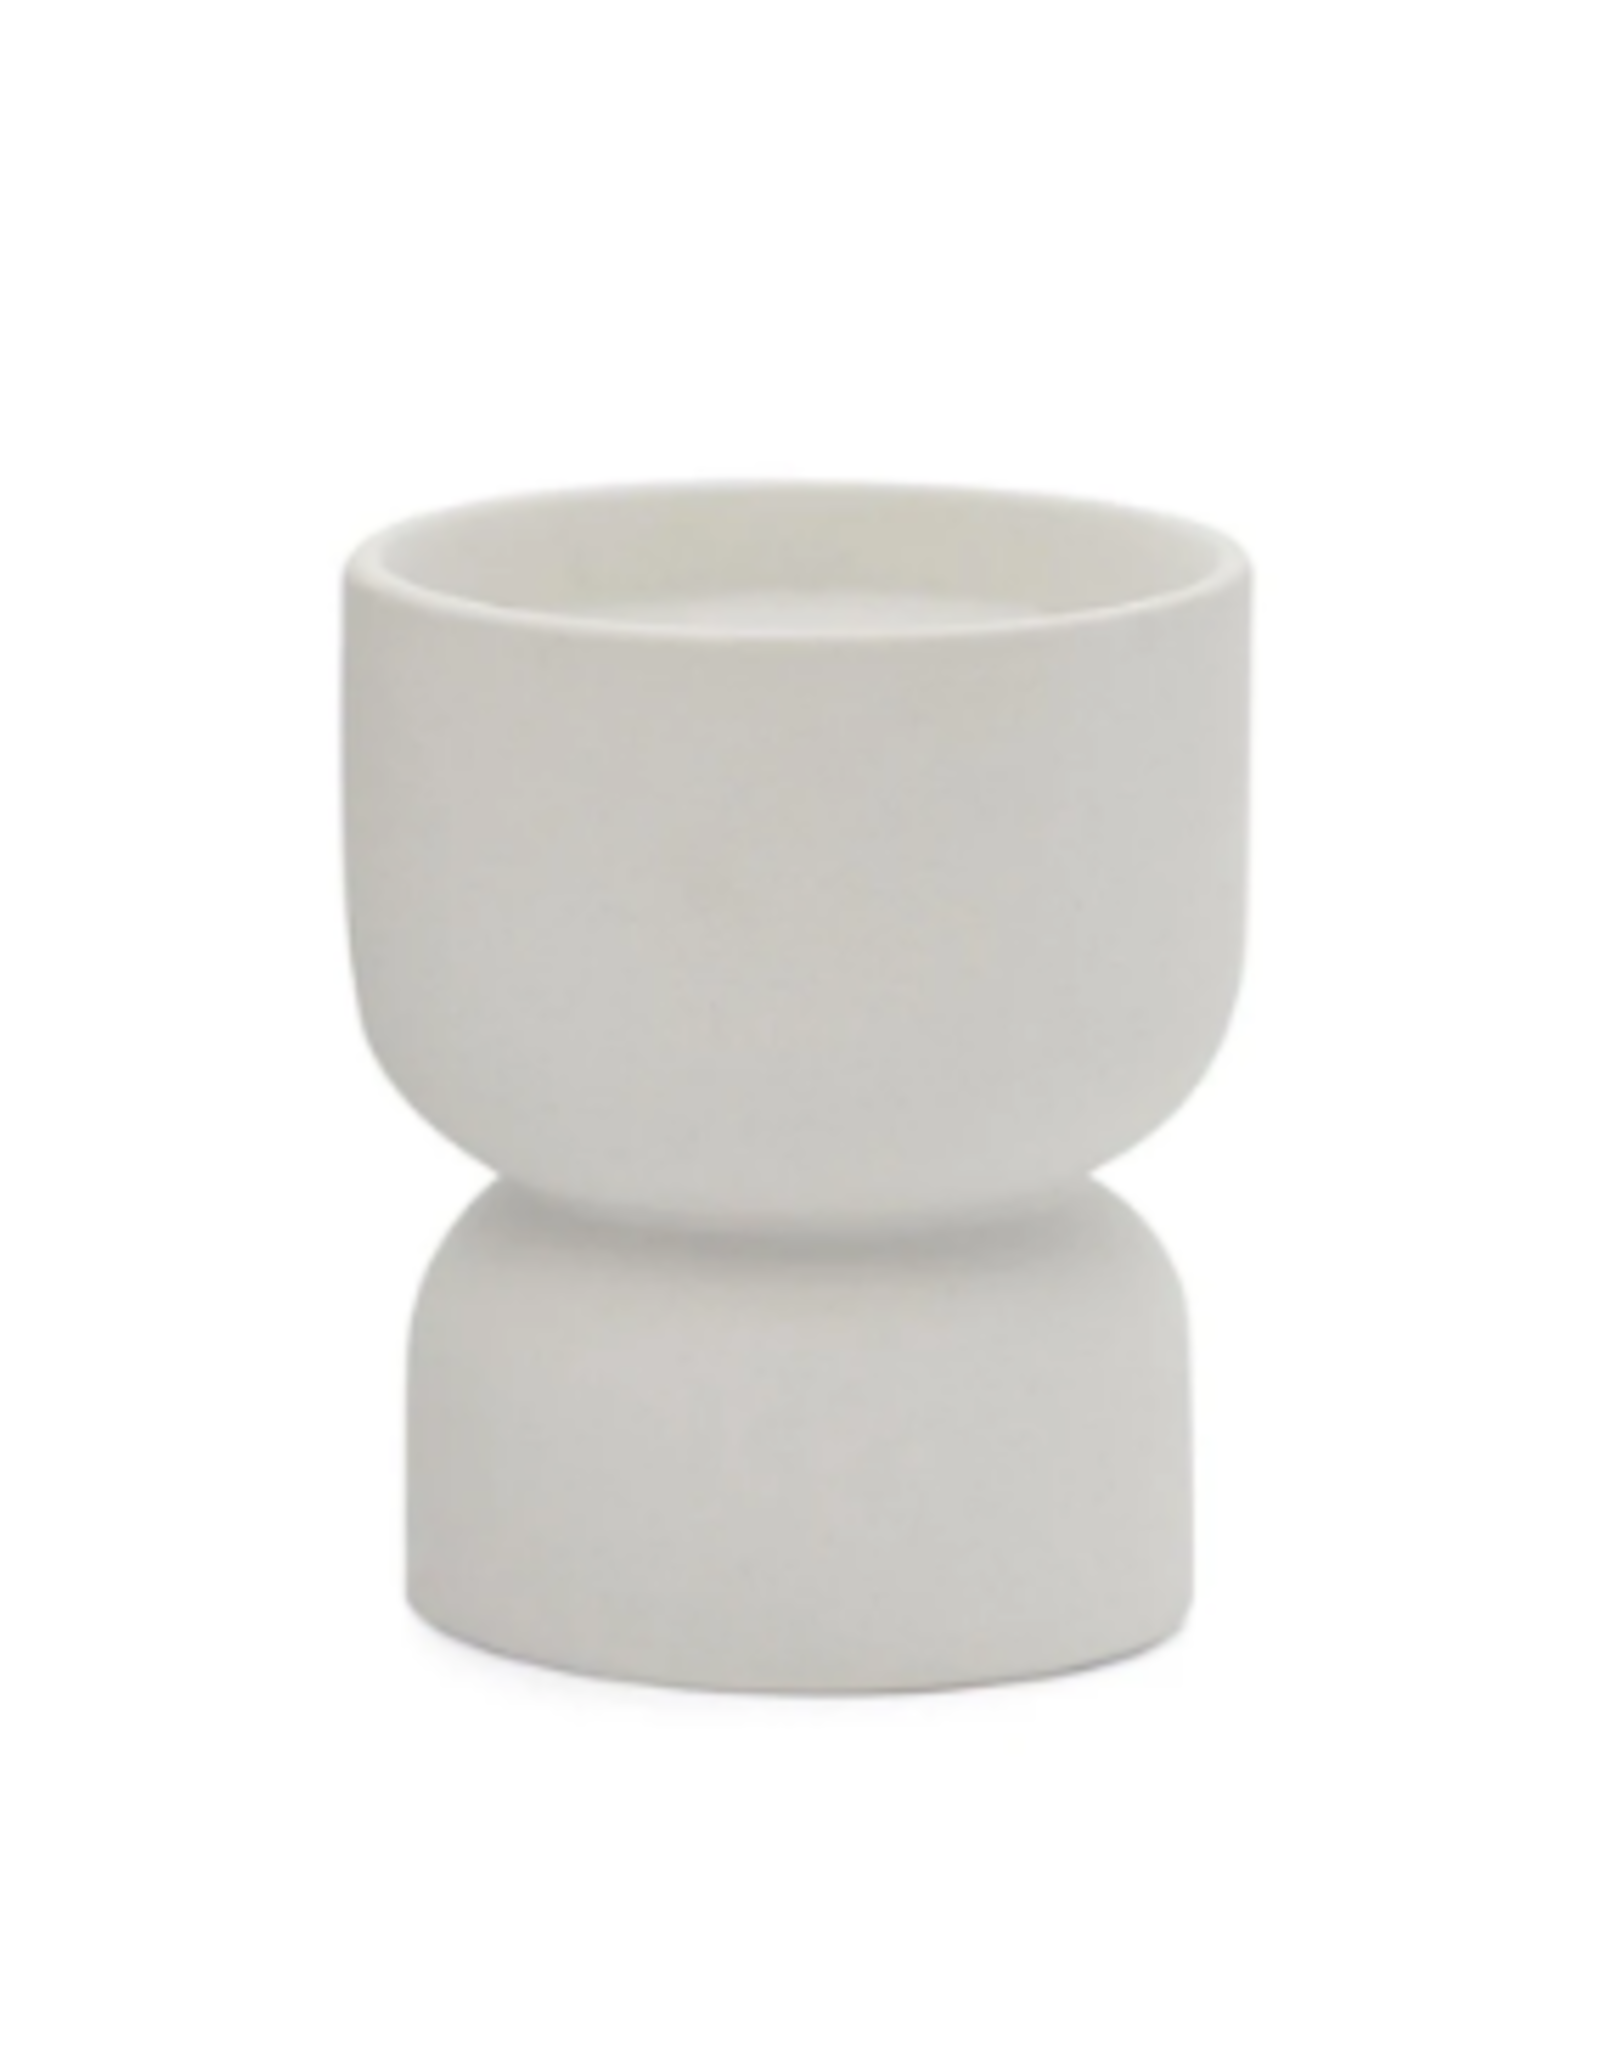 PAX - Soy Candle/Tobacco Flower, Ceramic, 6oz